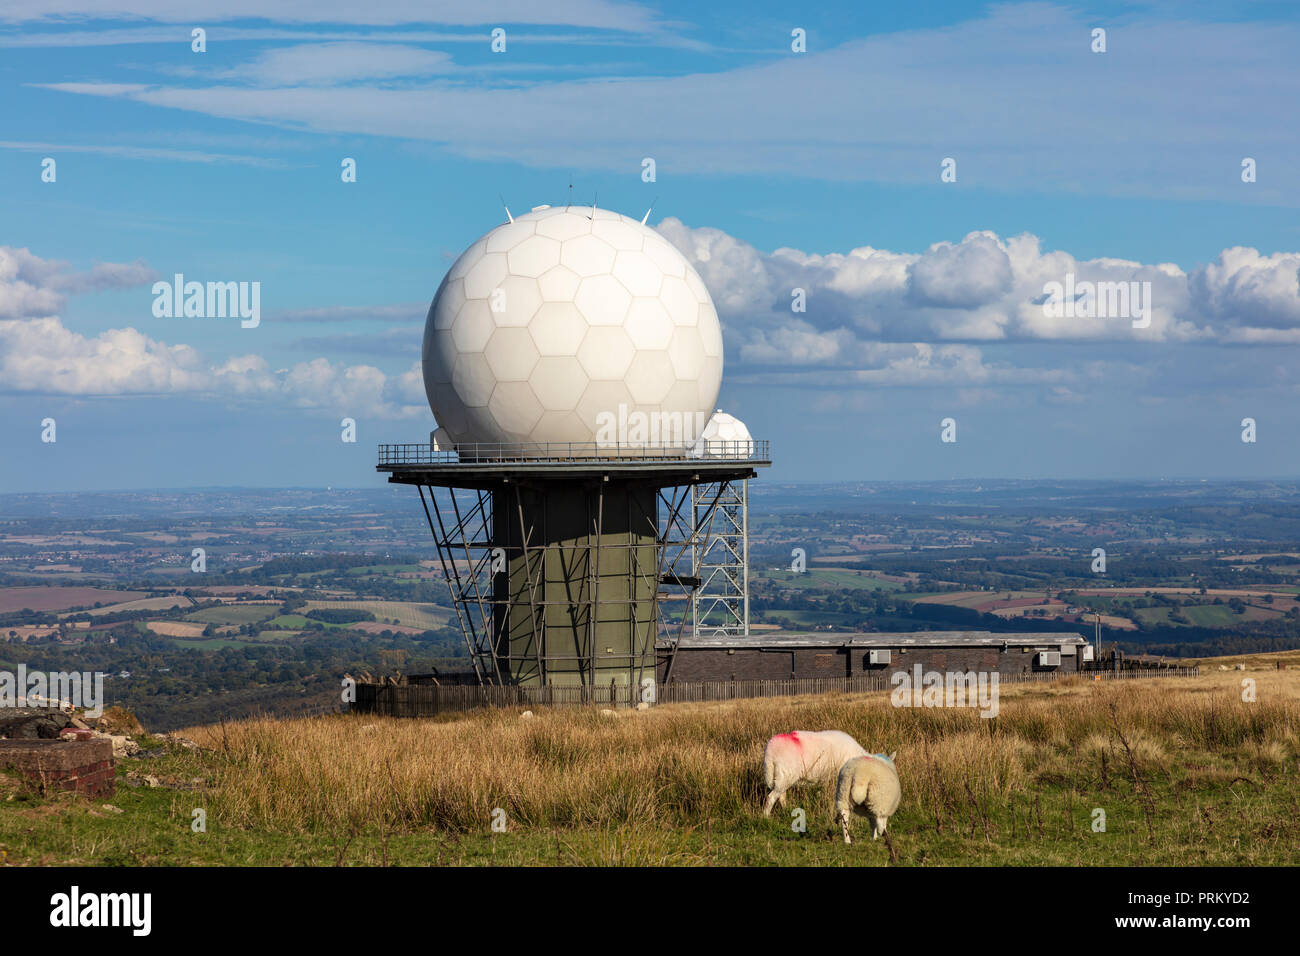 A Sheep Stands at the top of Titterstone Clee Hill with a Golfball from the nearby Radar station, Near Ludlow, Shropshire, UK - Stock Image